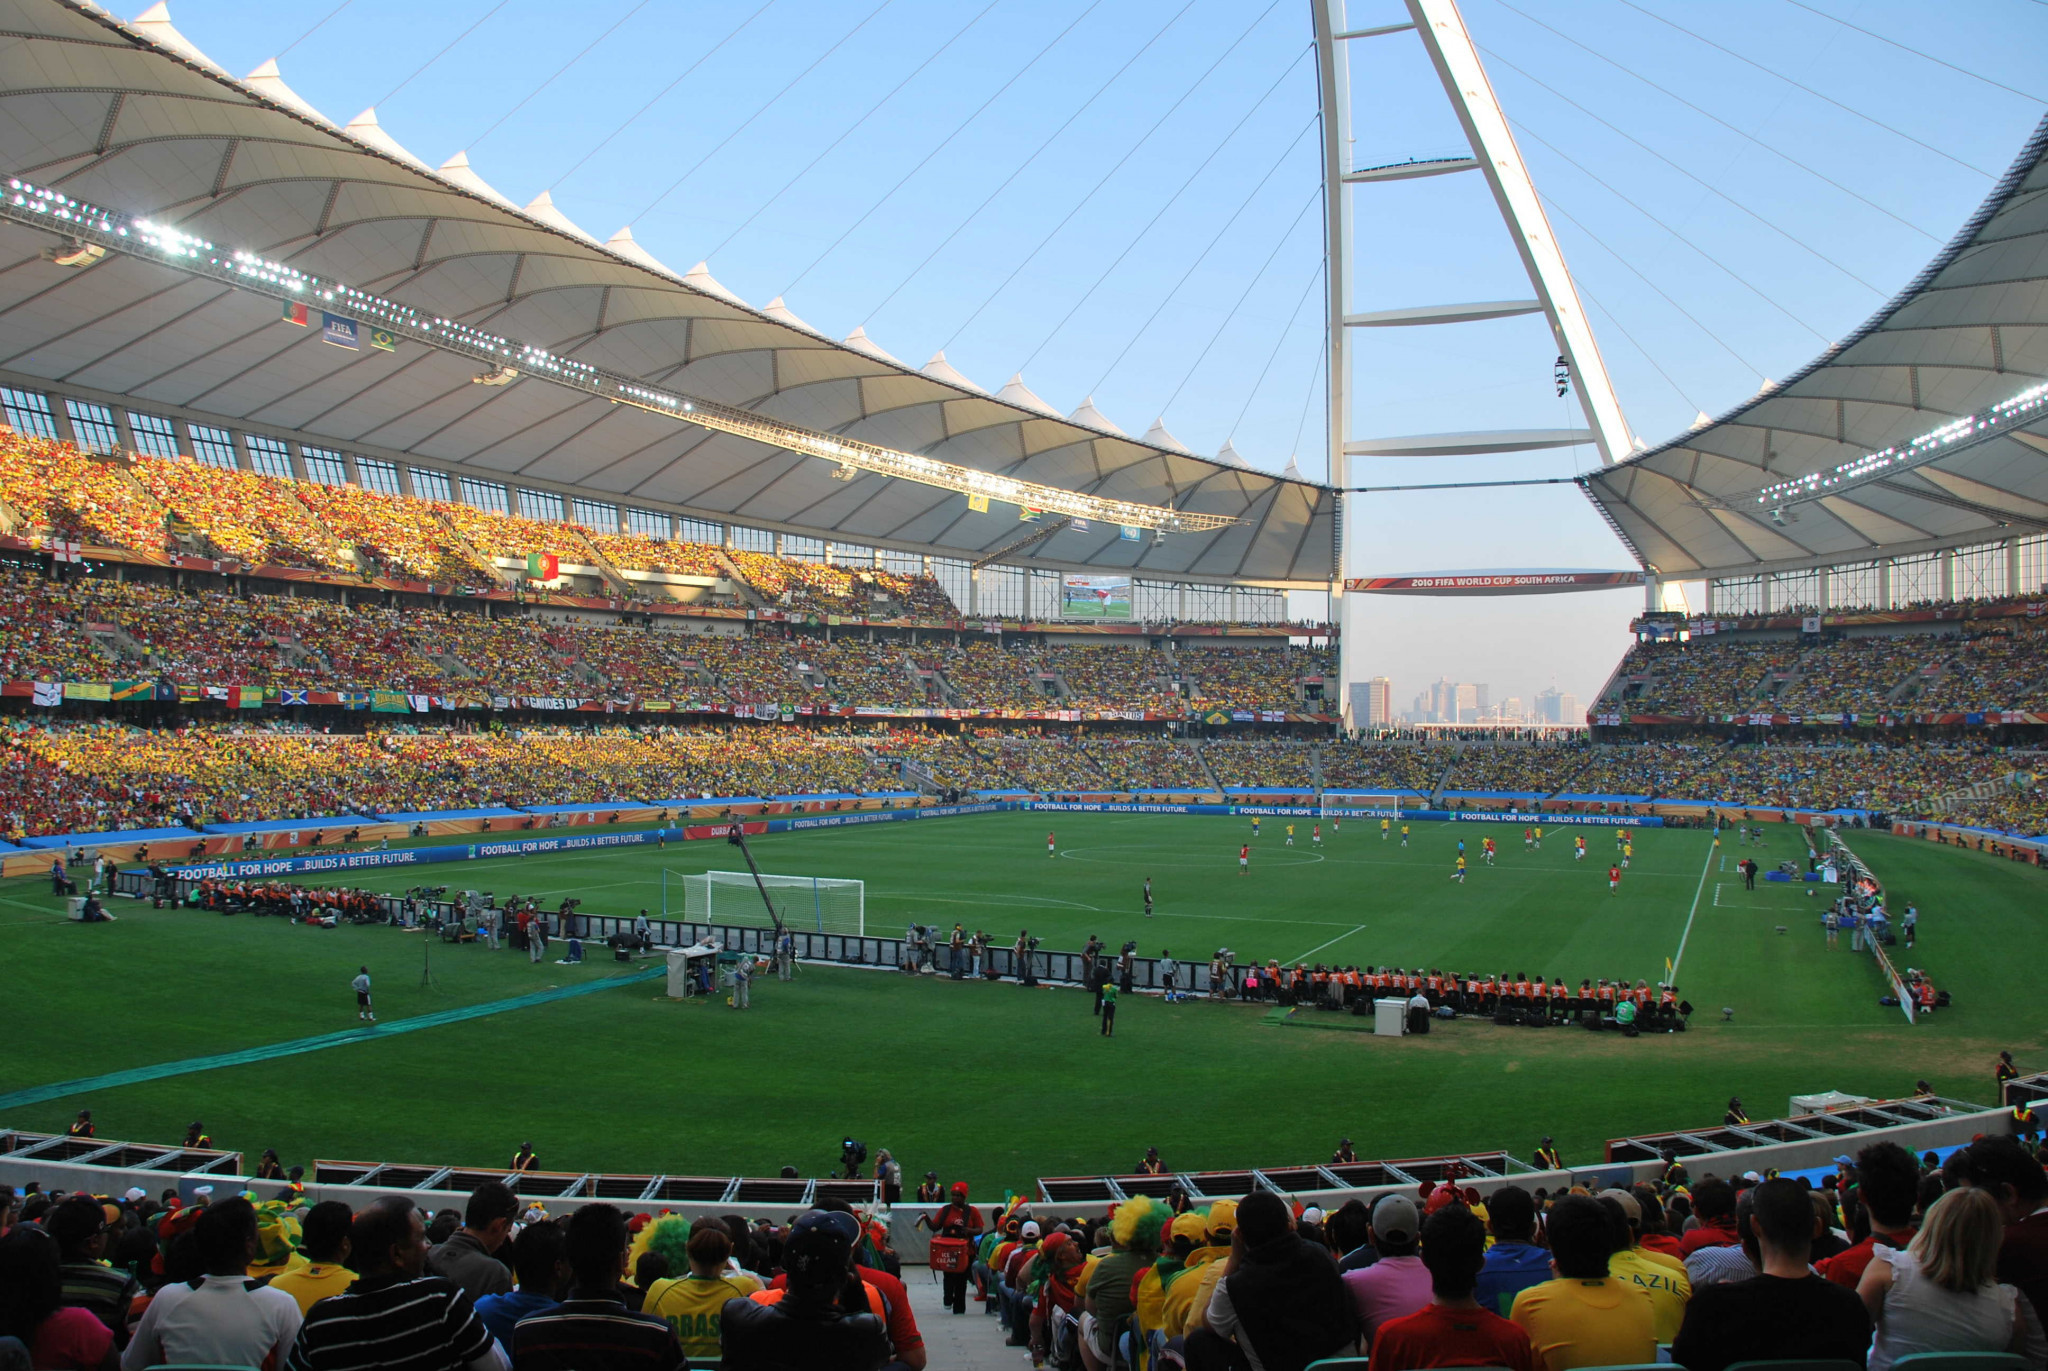 South African Football Association chief executive Russell Paul claimed that facilities built for the 2010 FIFA World Cup should have given them the edge over rivals Egypt to host the 2019 Africa Cup of Nations ©Getty Images